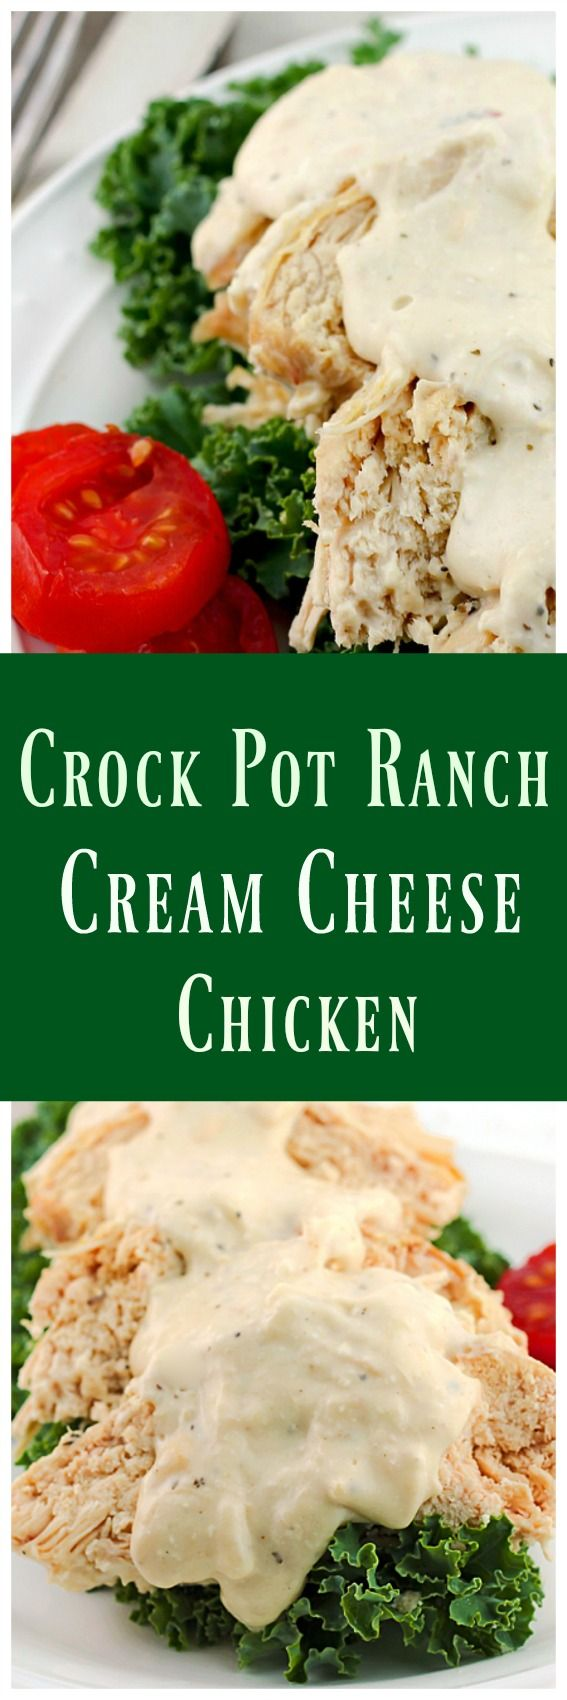 Crock Pot Ranch Cream Cheese Chicken - It's creamy consistency and light Ranch flavor along with the fork tender chicken breasts is irresistible.   via @https://www.pinterest.com/BunnysWarmOven/bunnys-warm-oven/